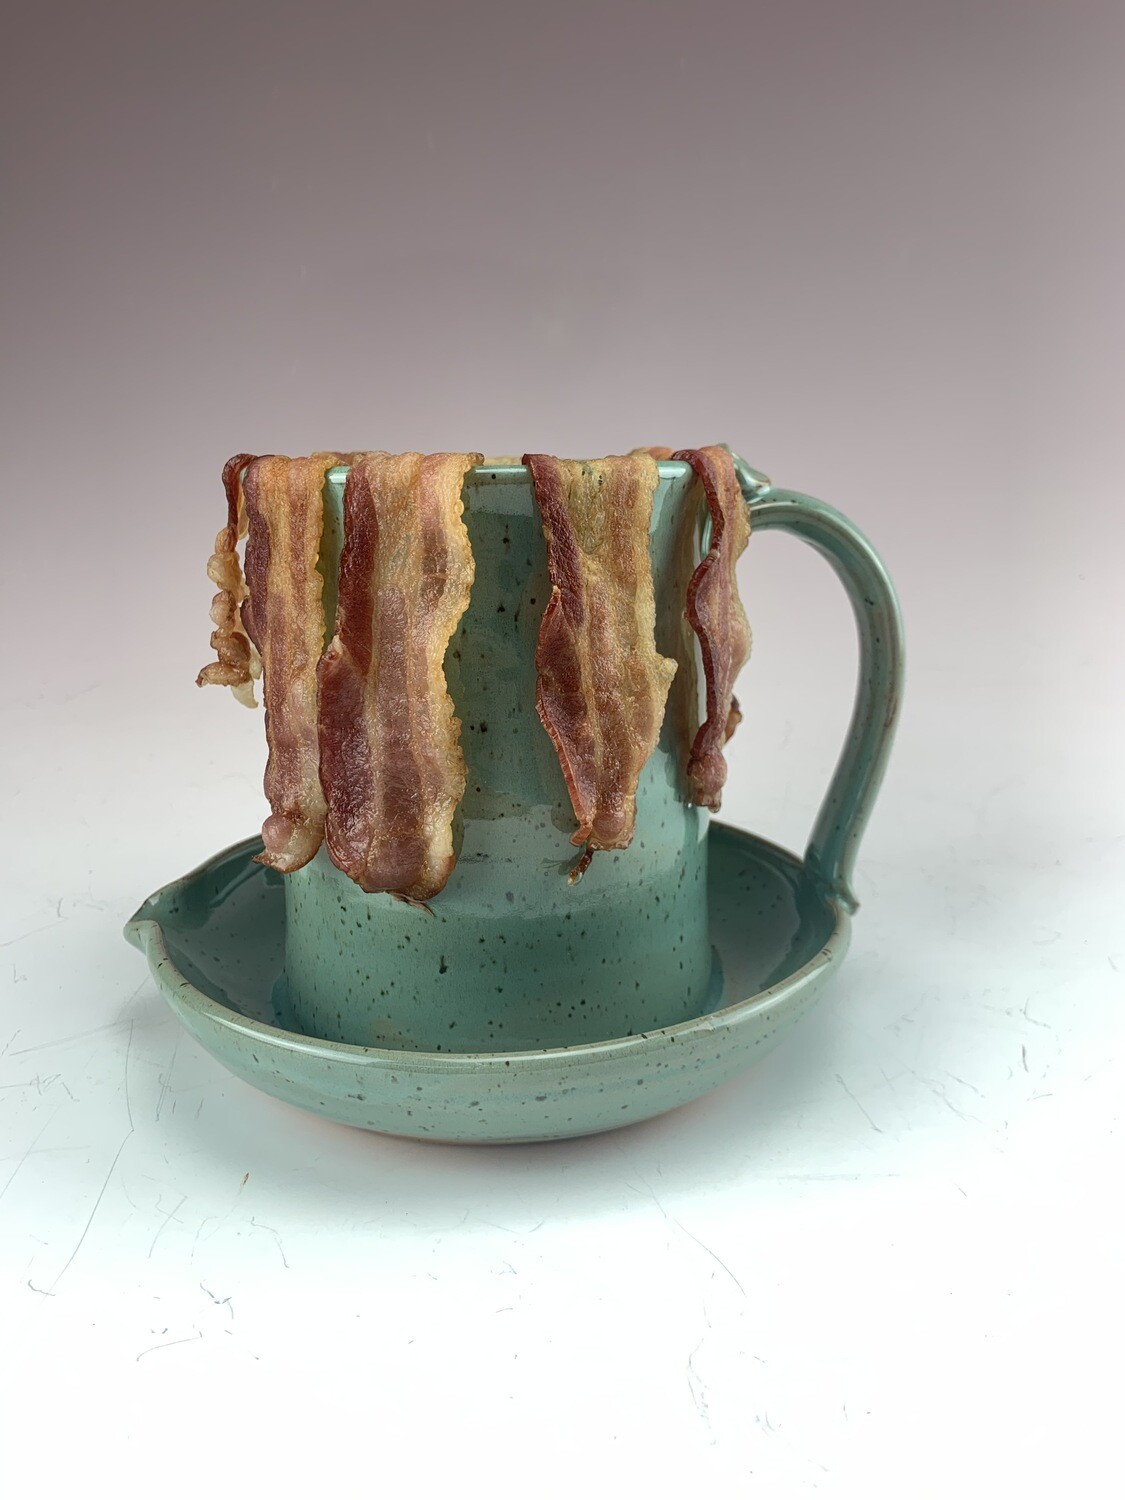 Bacon Cooker/Evelyn